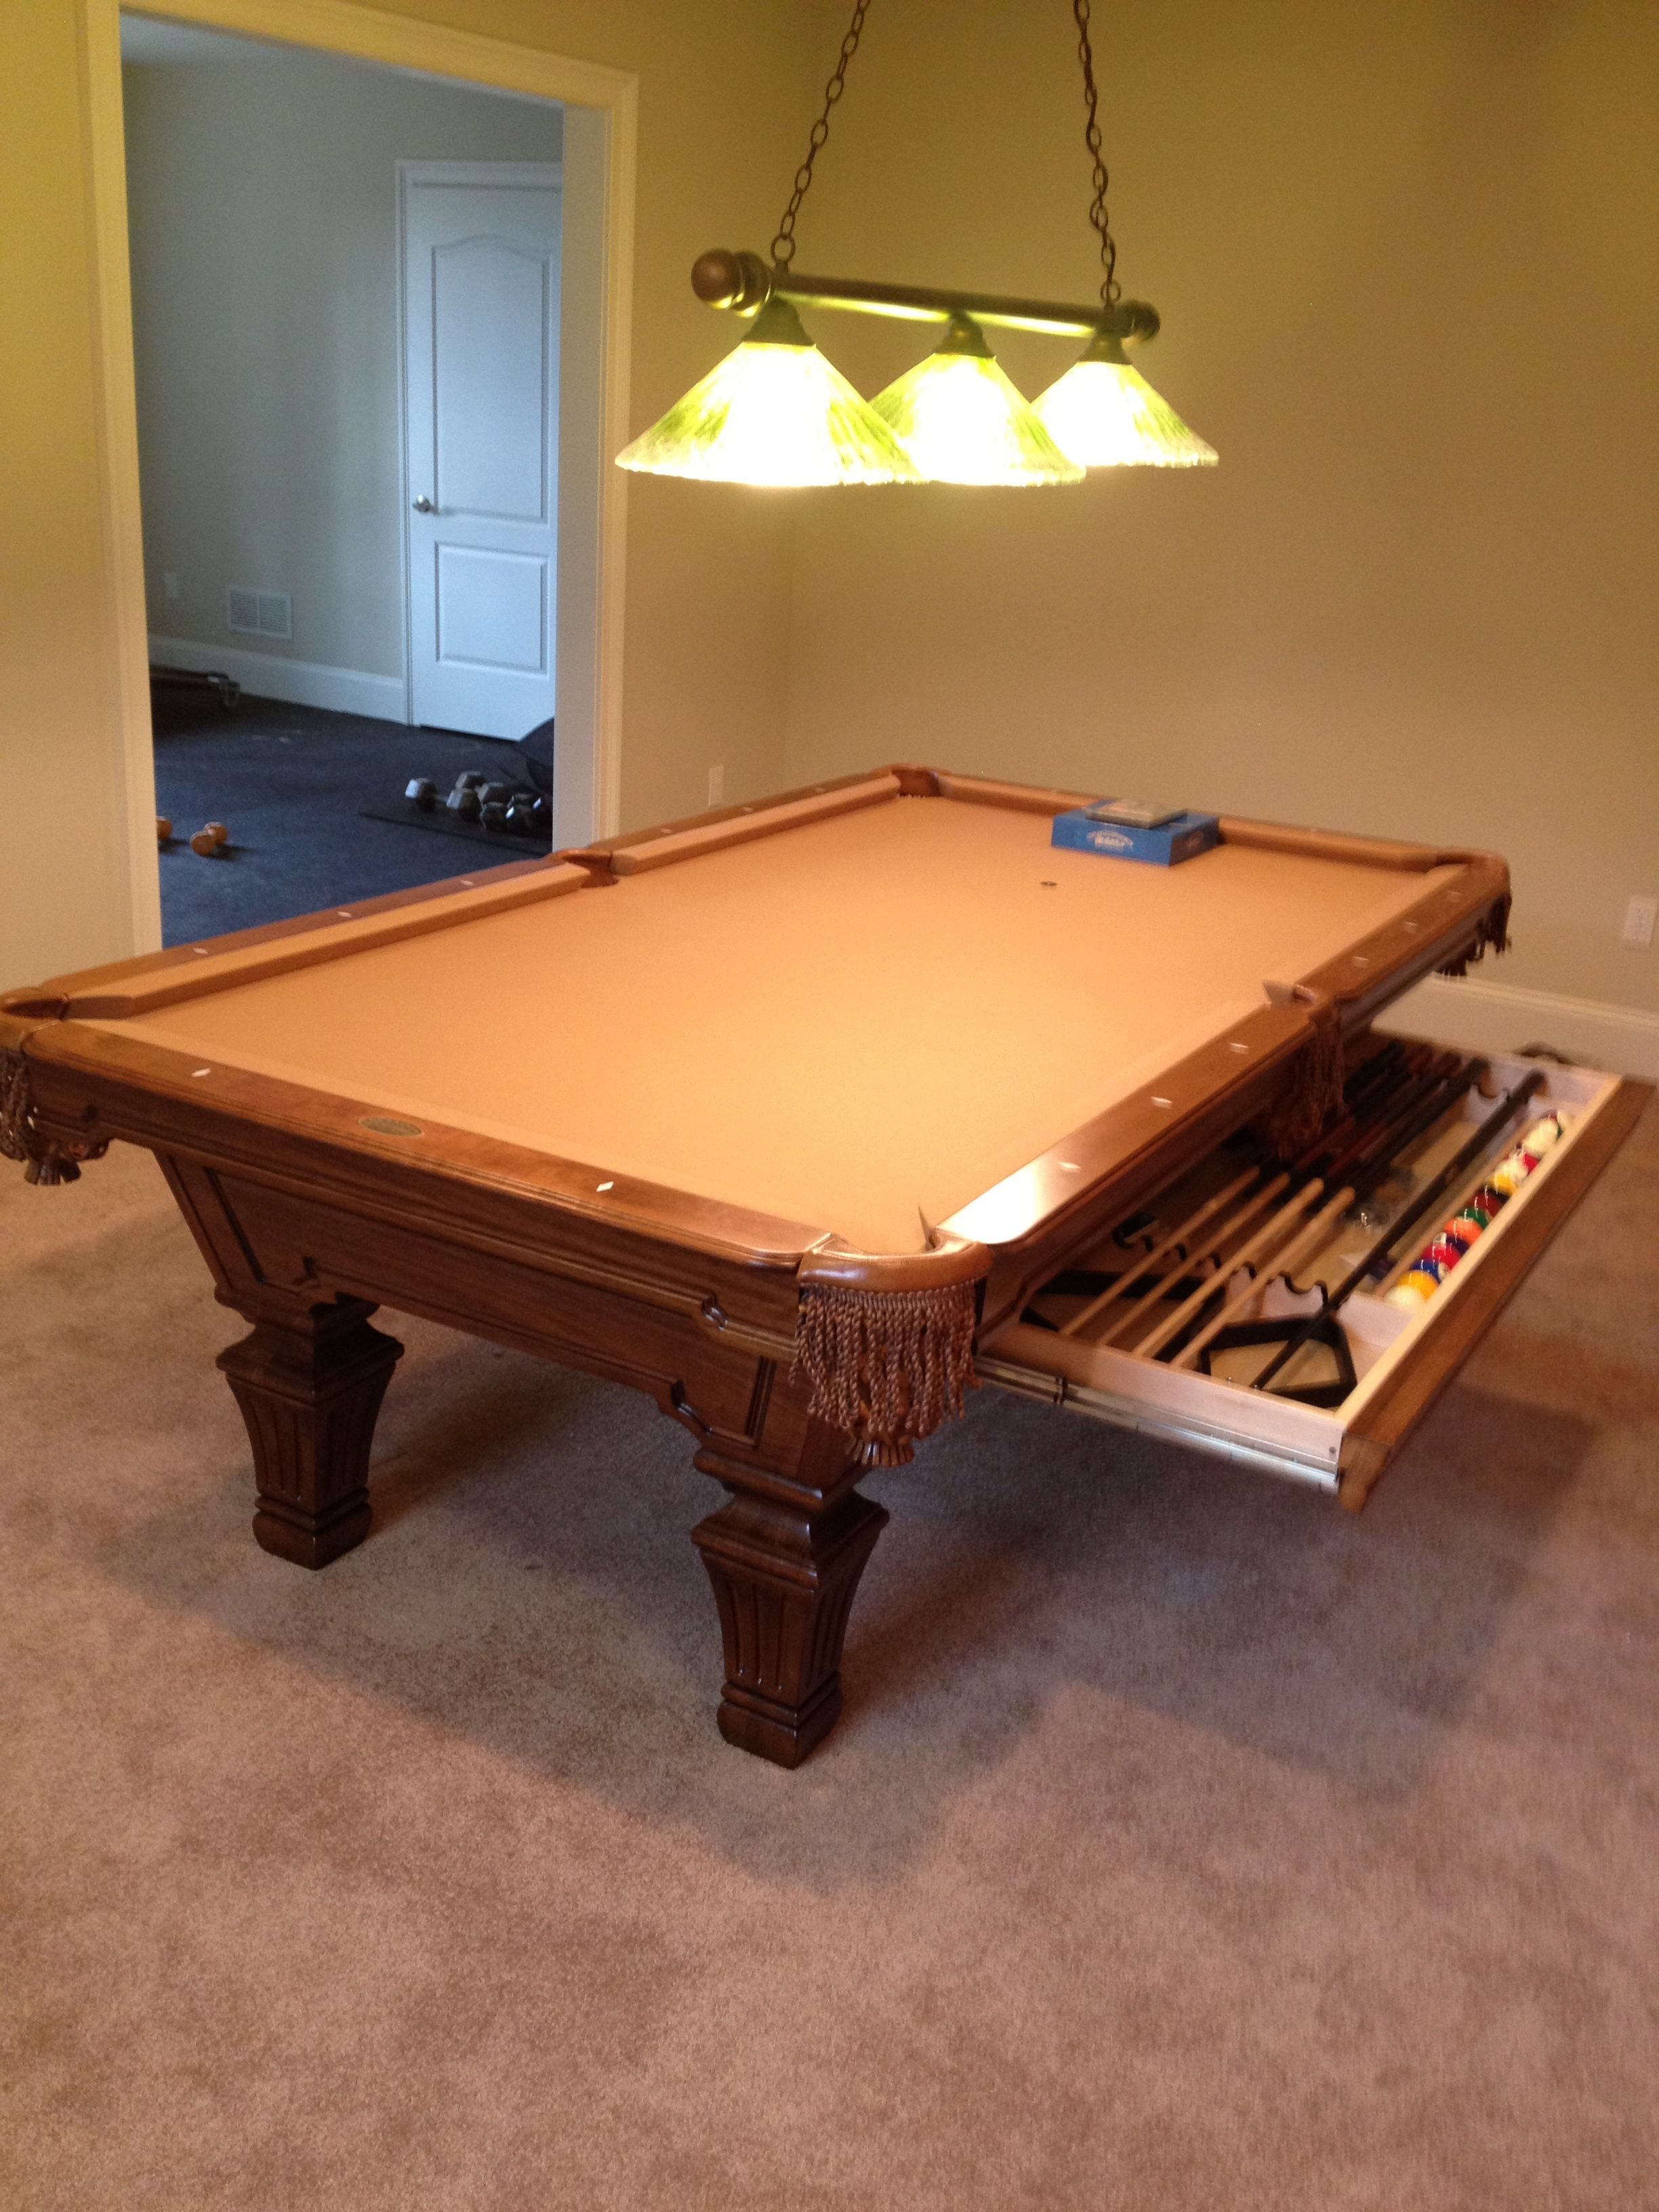 Olhausen Hampton With Cue Storage Drawer In A Heritage Mahogany - Olhausen hampton pool table